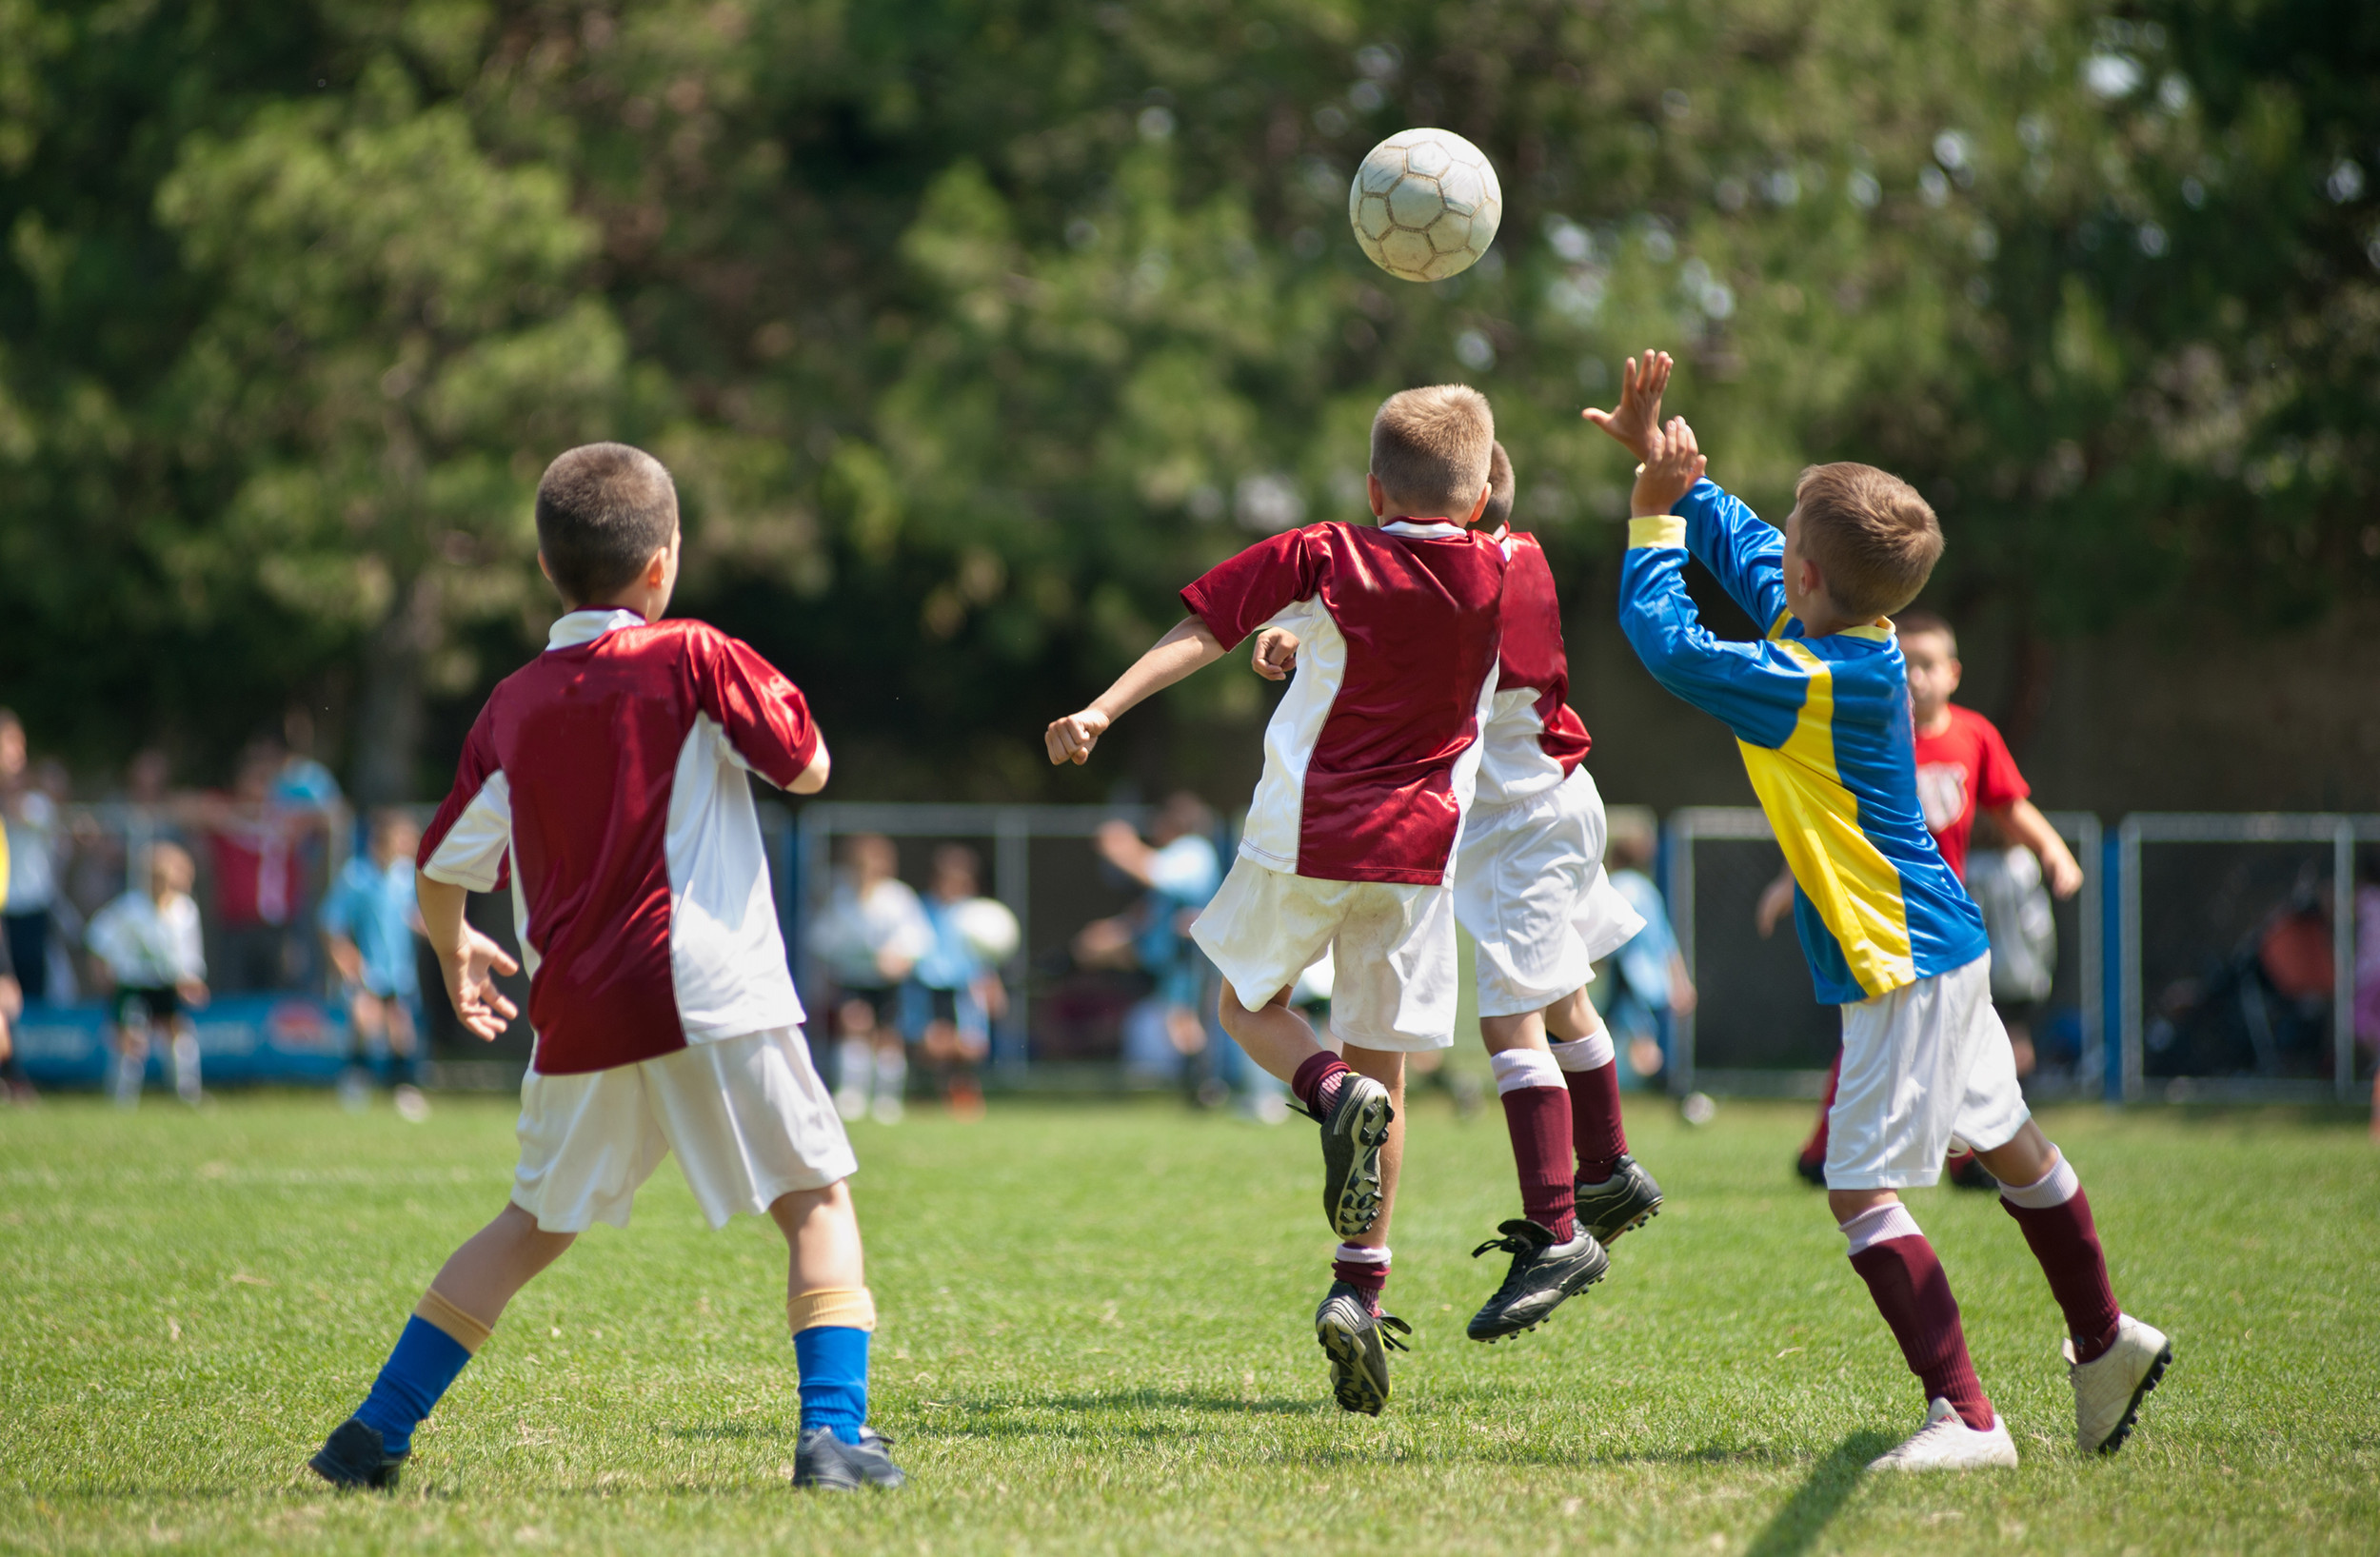 How much do parents spend on their kids' extracurricular activities?